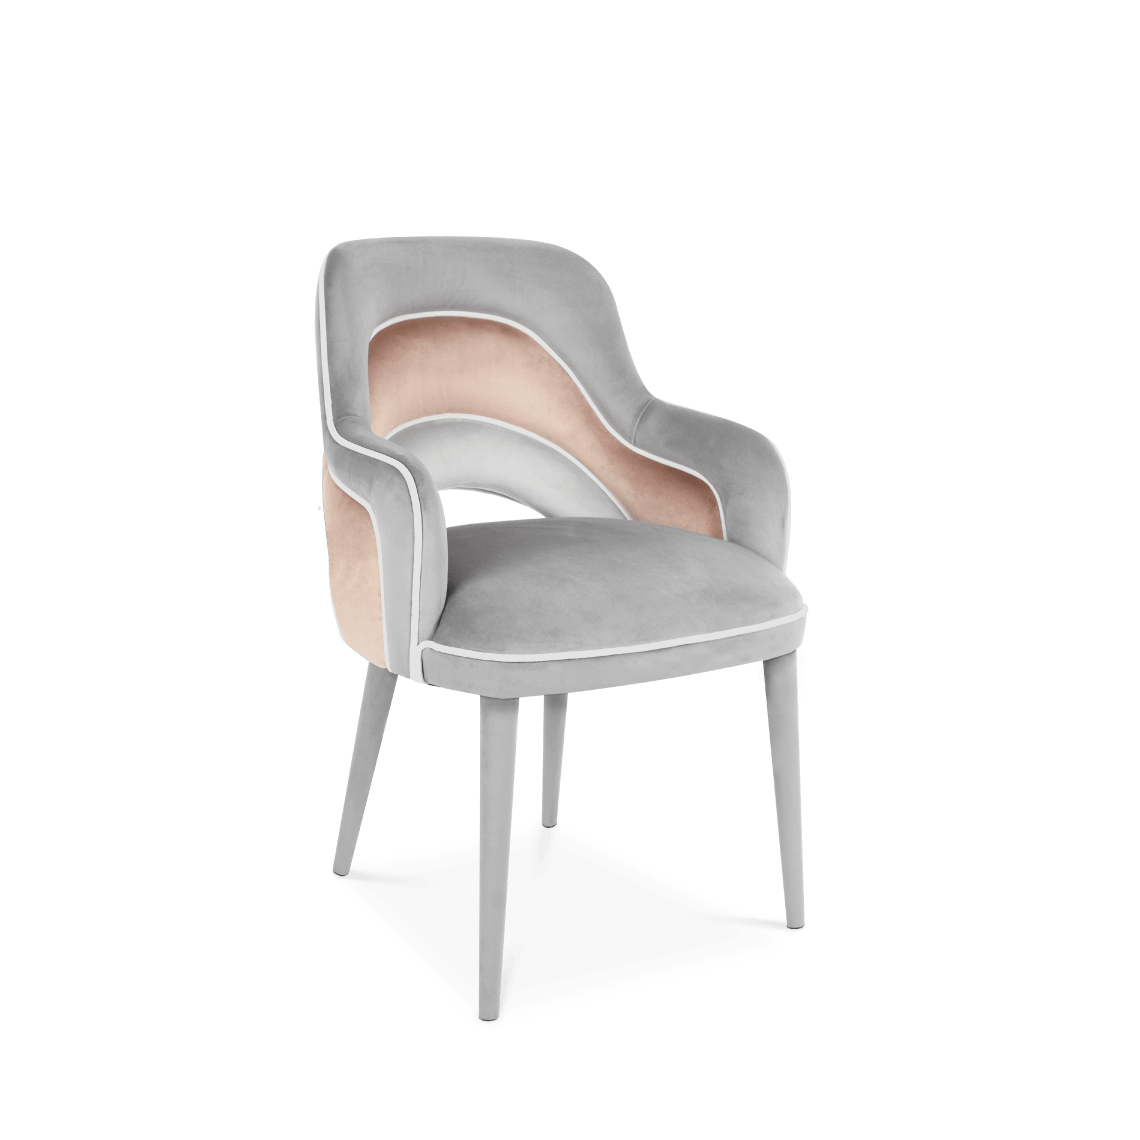 Charisse Dining Chair by Ottiu